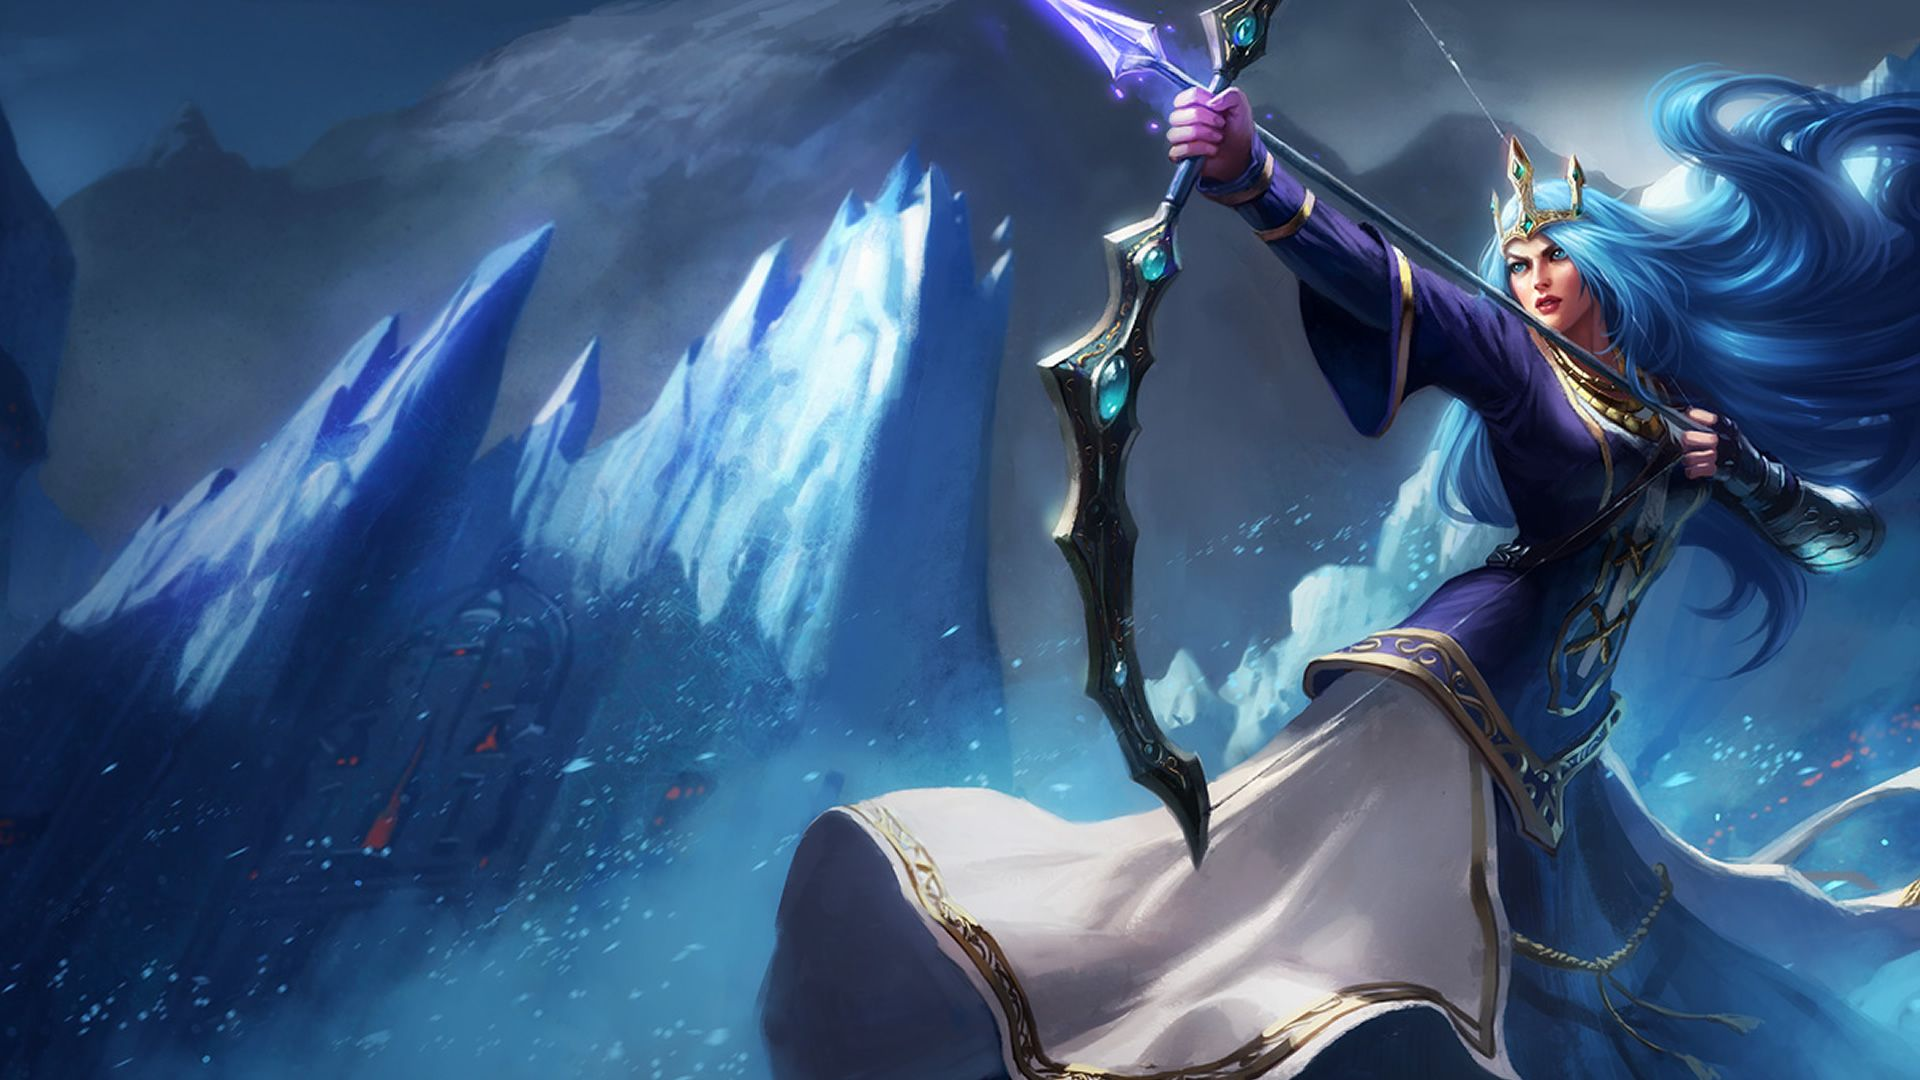 Queen Ashe Wallpaper Lol League Of Legends League Legends